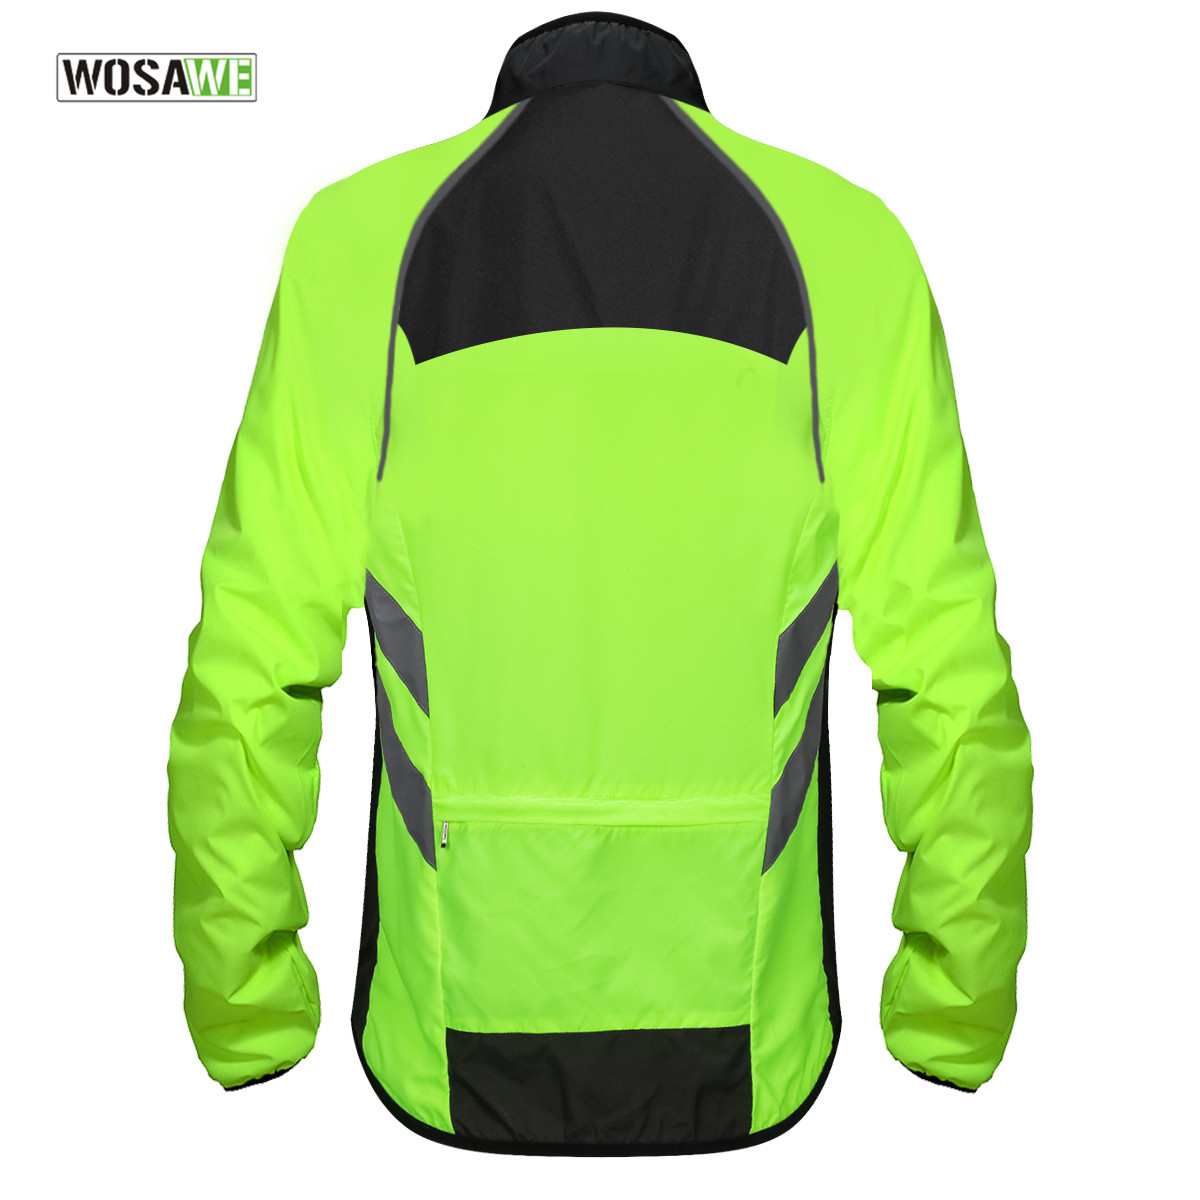 WOSAWE Cycling Rain Jacket High Visibility MultiFunction Jersey Road MTB Bike Bicycle Windproof Quick Dry Rain Coat Windbreaker in Cycling Jackets from Sports Entertainment